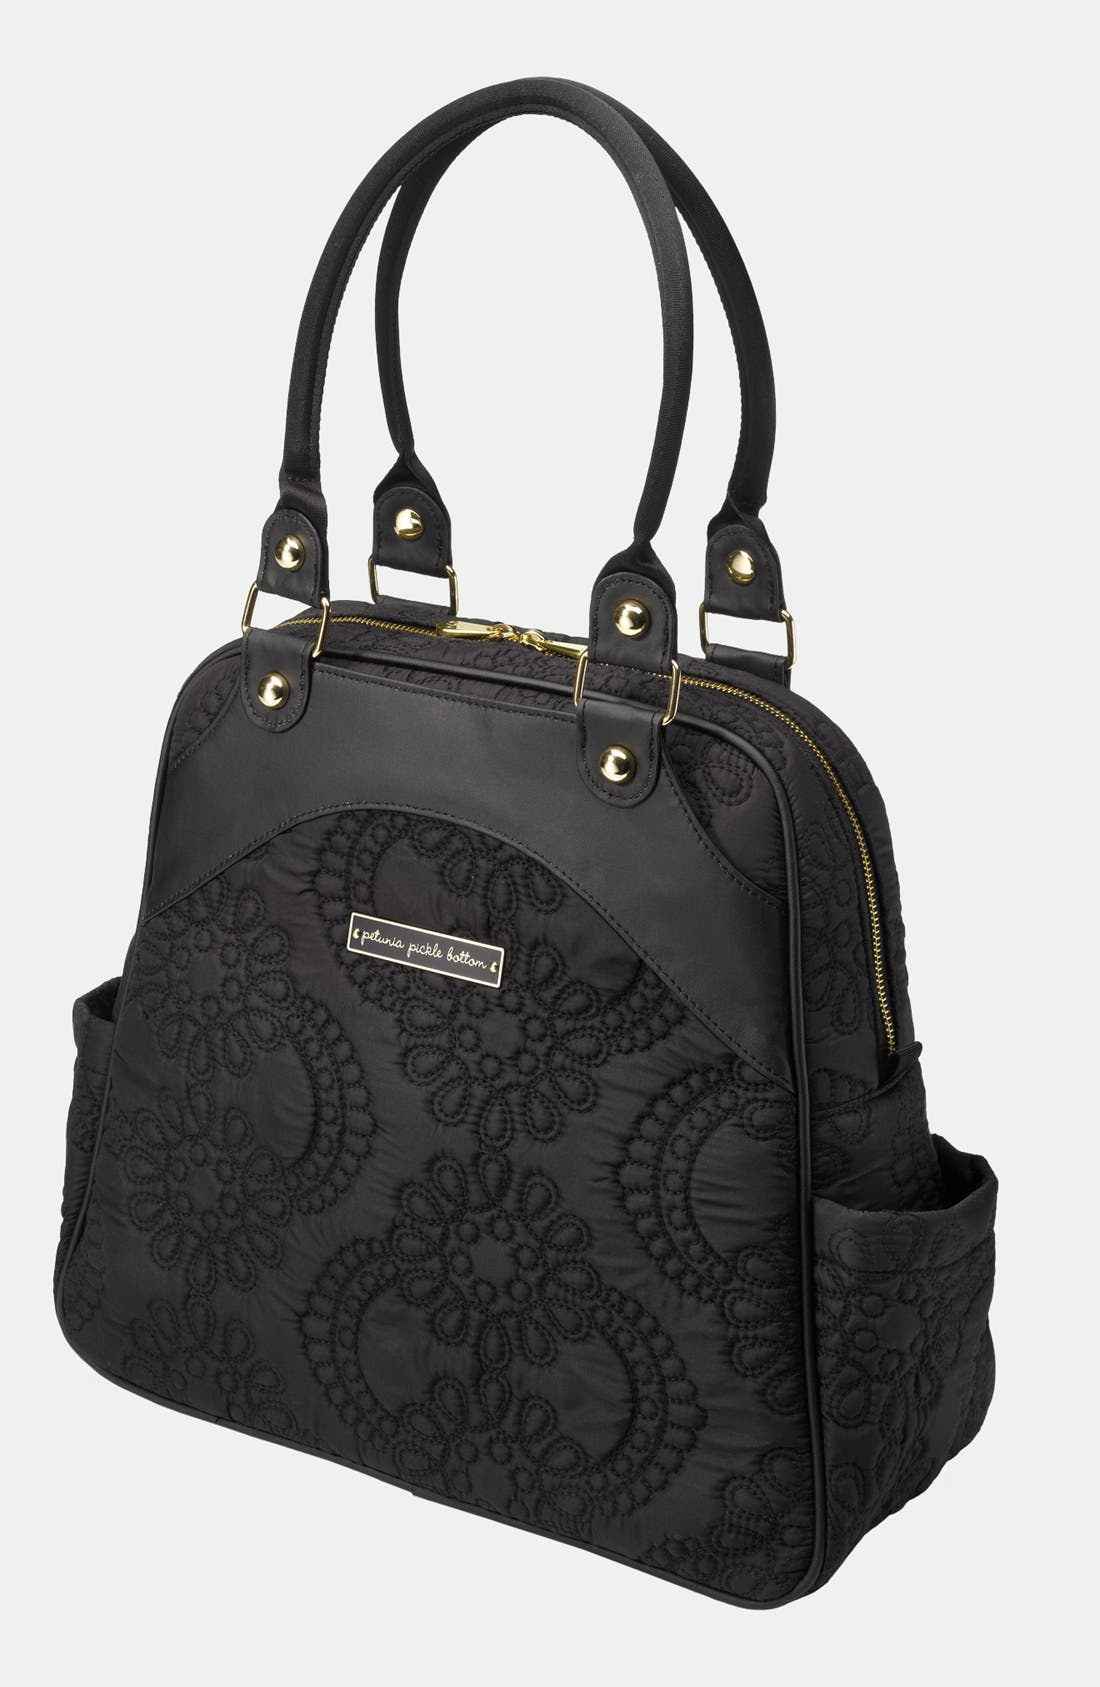 Main Image - Petunia Pickle Bottom 'Embossed Sashay' Diaper Bag (Special Edition)